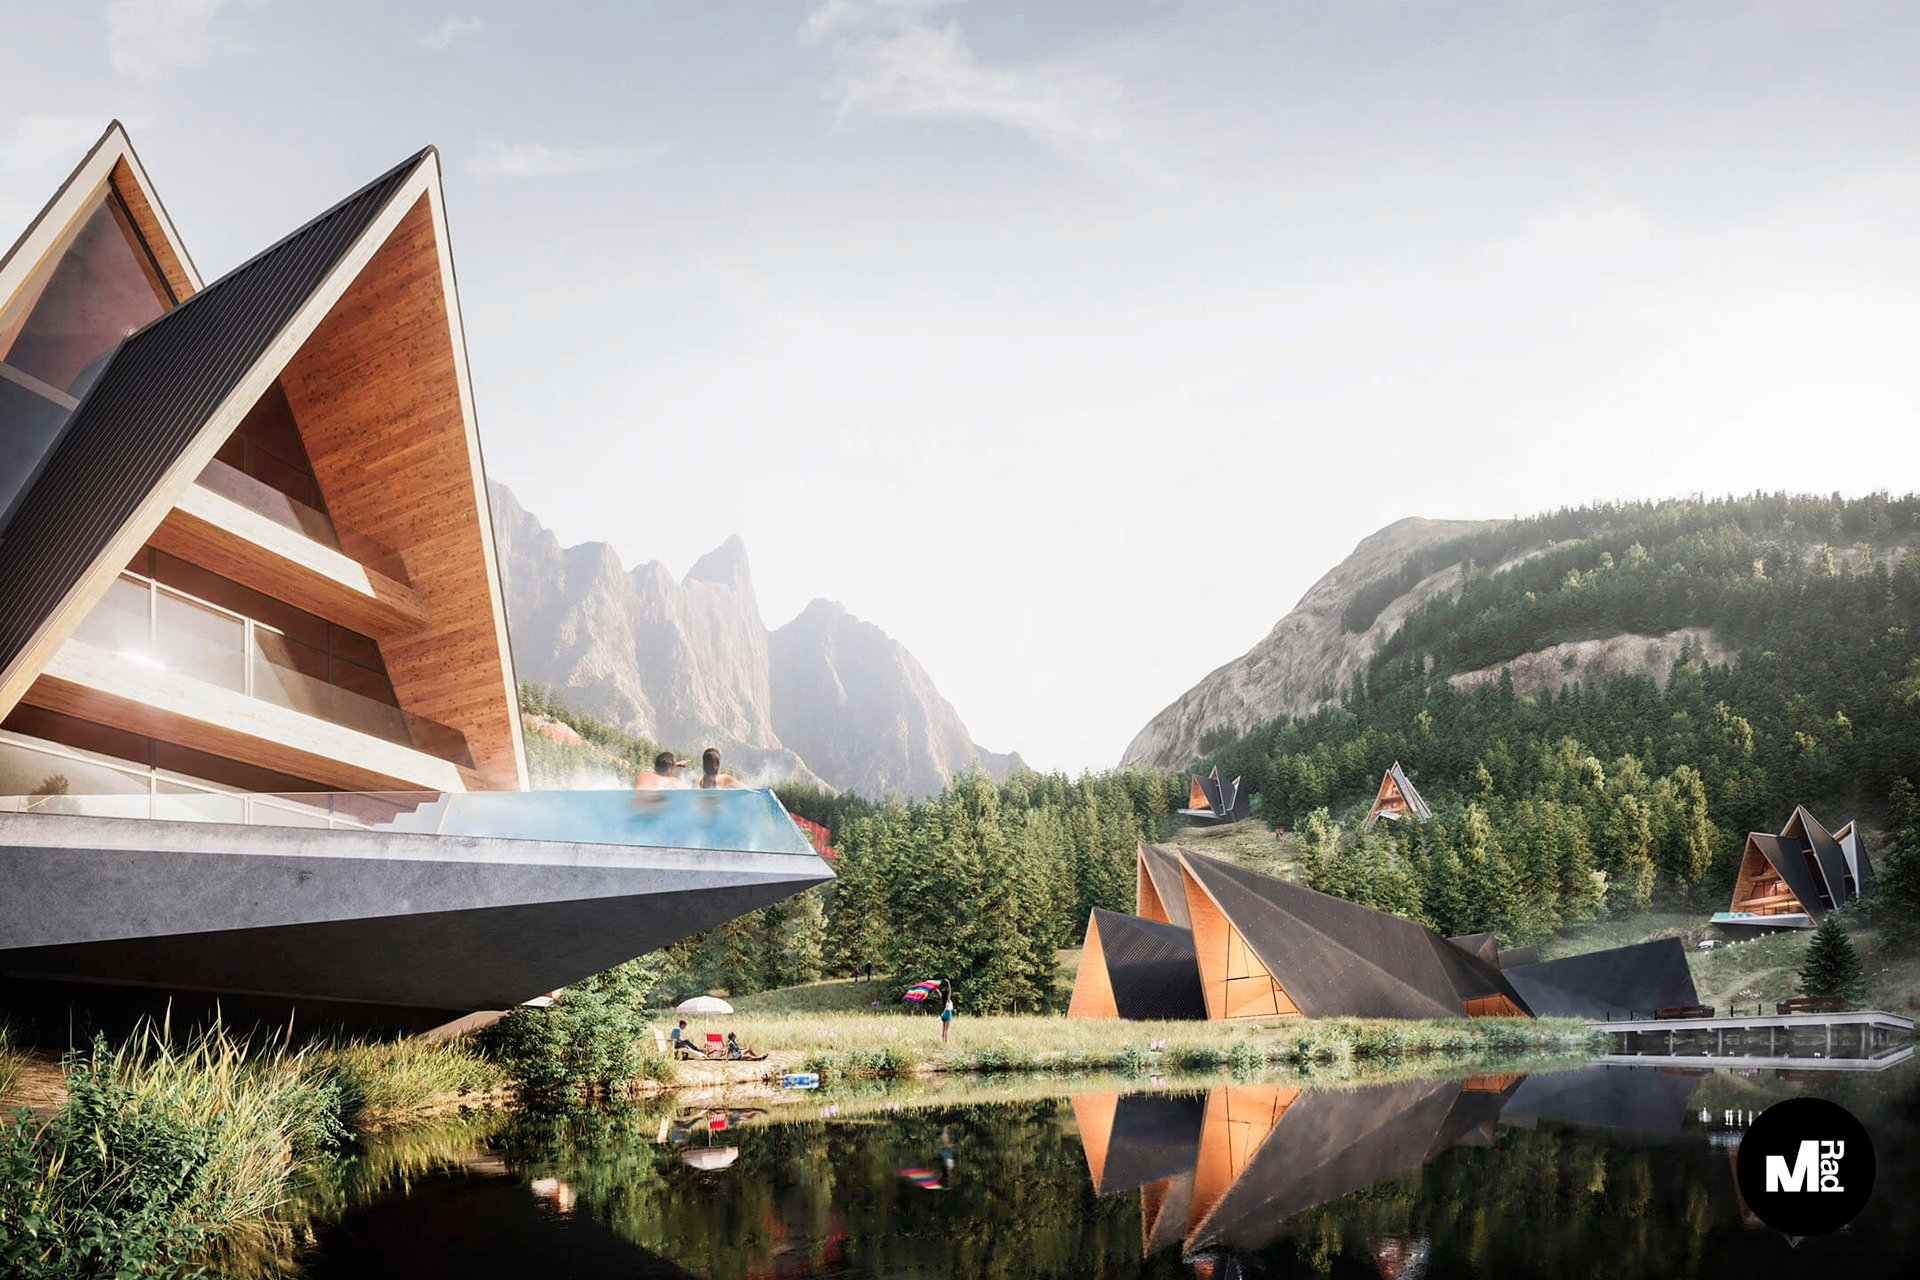 3D Exterior Visualization of a Lakeside Resort Hotel